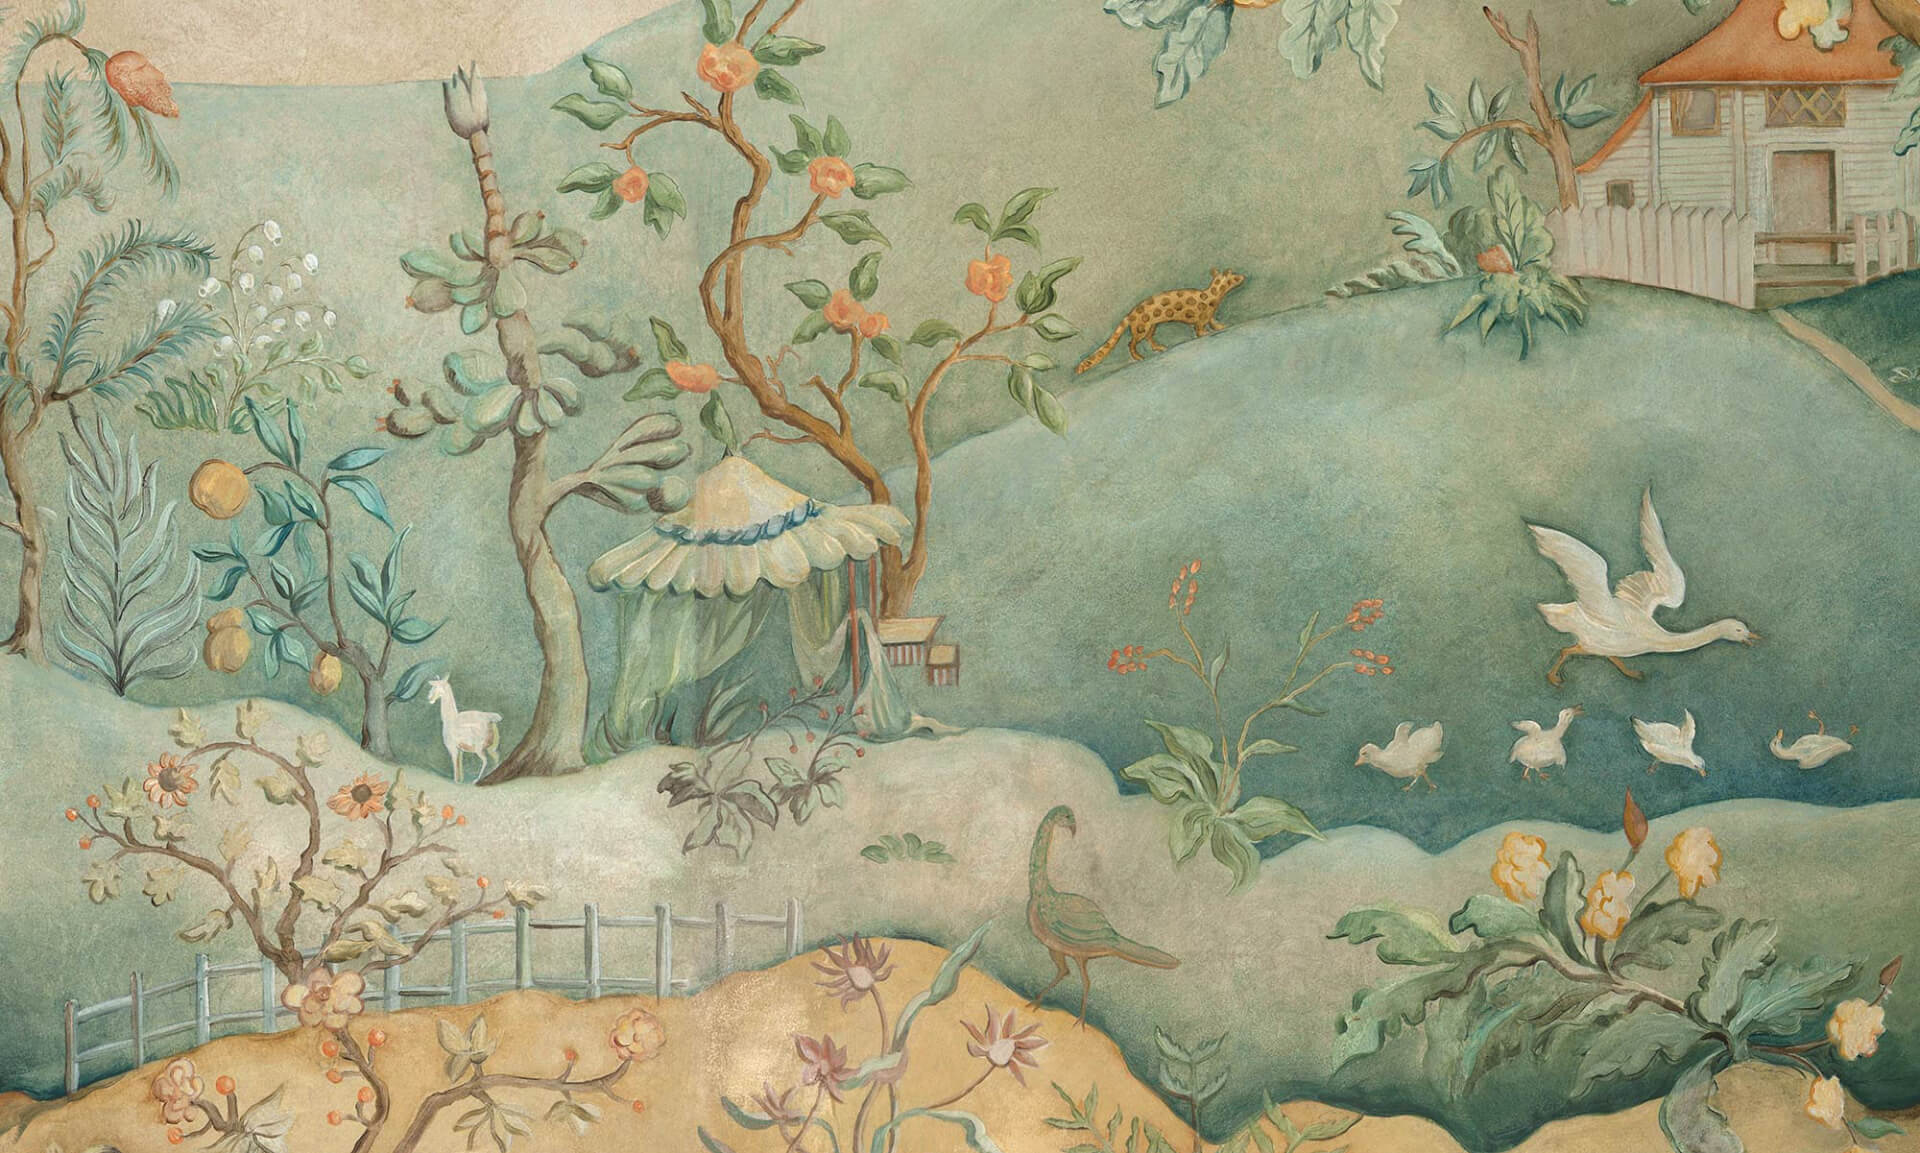 Zo design hand painted chinoiserie mural wallpaper for A mural is painted on a